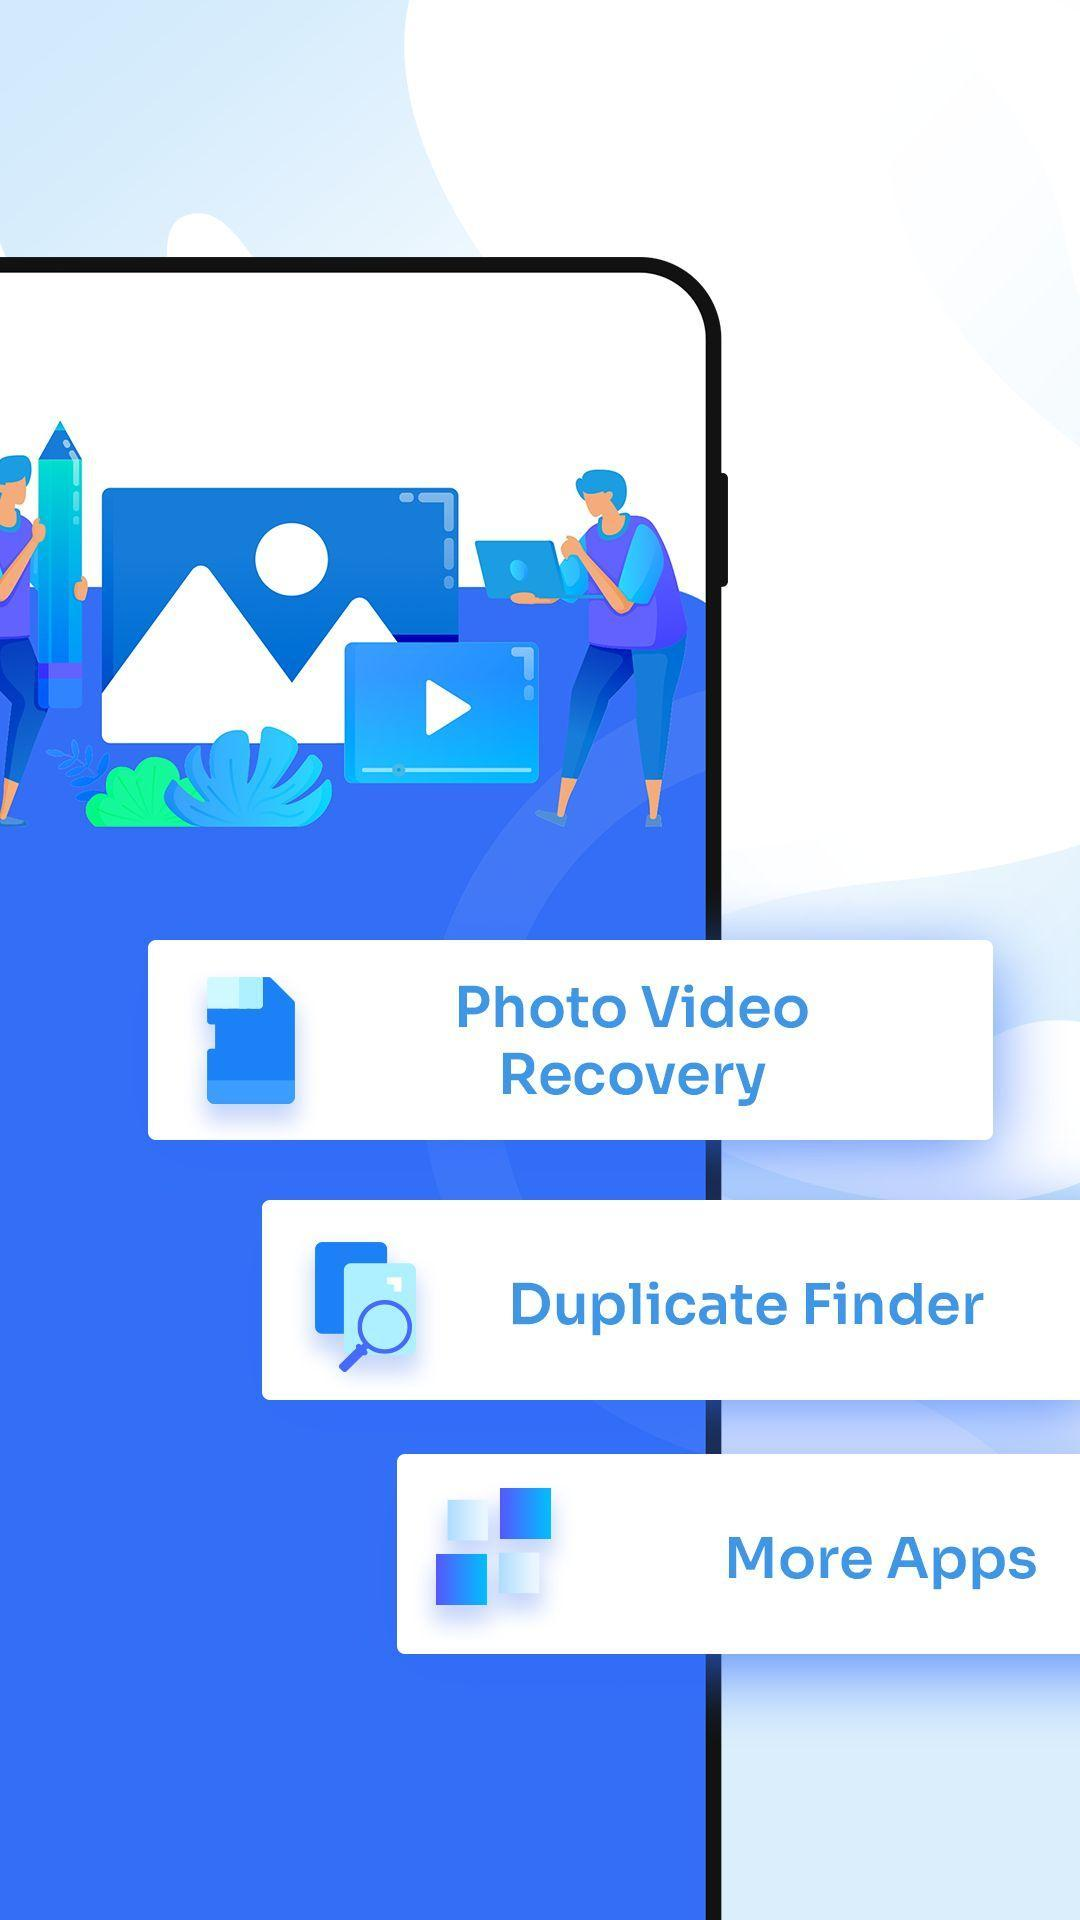 Fast Photo Video Recovery Remove Duplicate Files For Android Apk Download